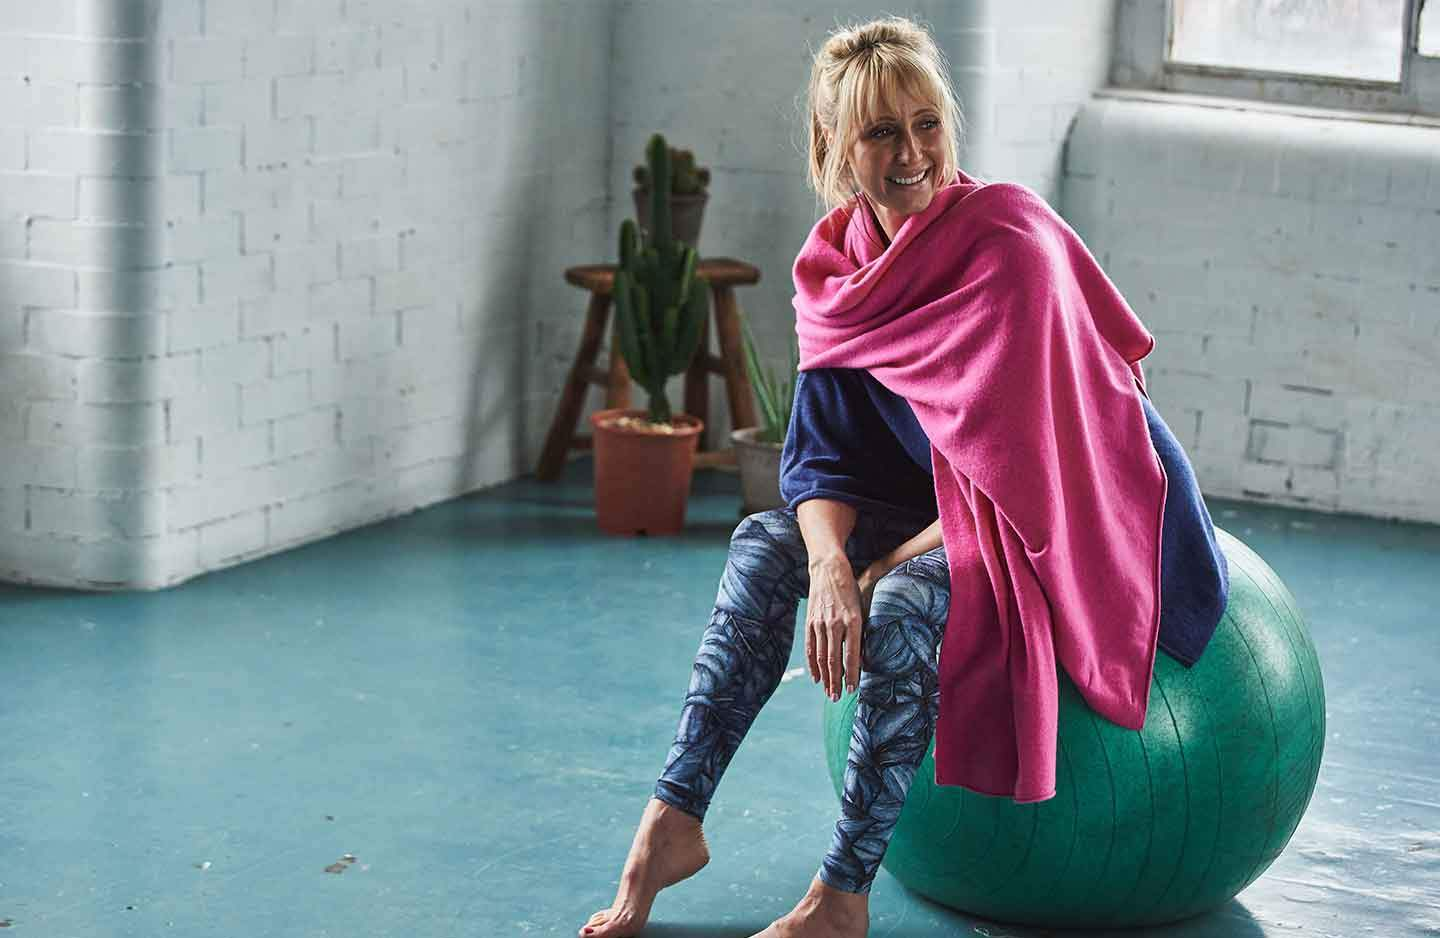 Women sat on green yoga ball in blue sportswear with a blue cashmere poncho layered over the top with a pink cashmere wrap wrapped around shoulders in building with white brick wall and windows with cactus and wooden stool in the corner